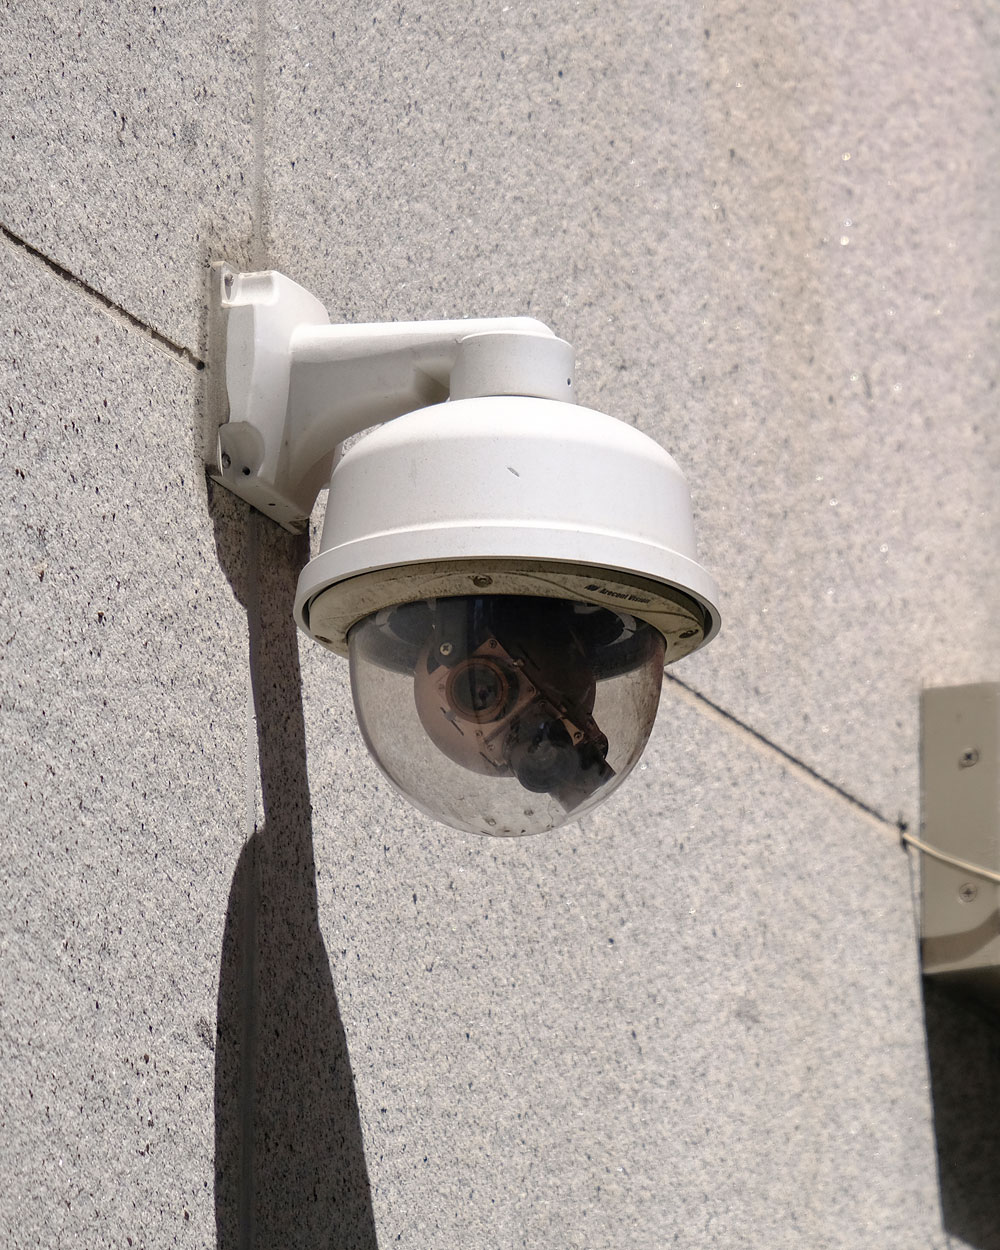 A security camera in the Financial District of San Francisco